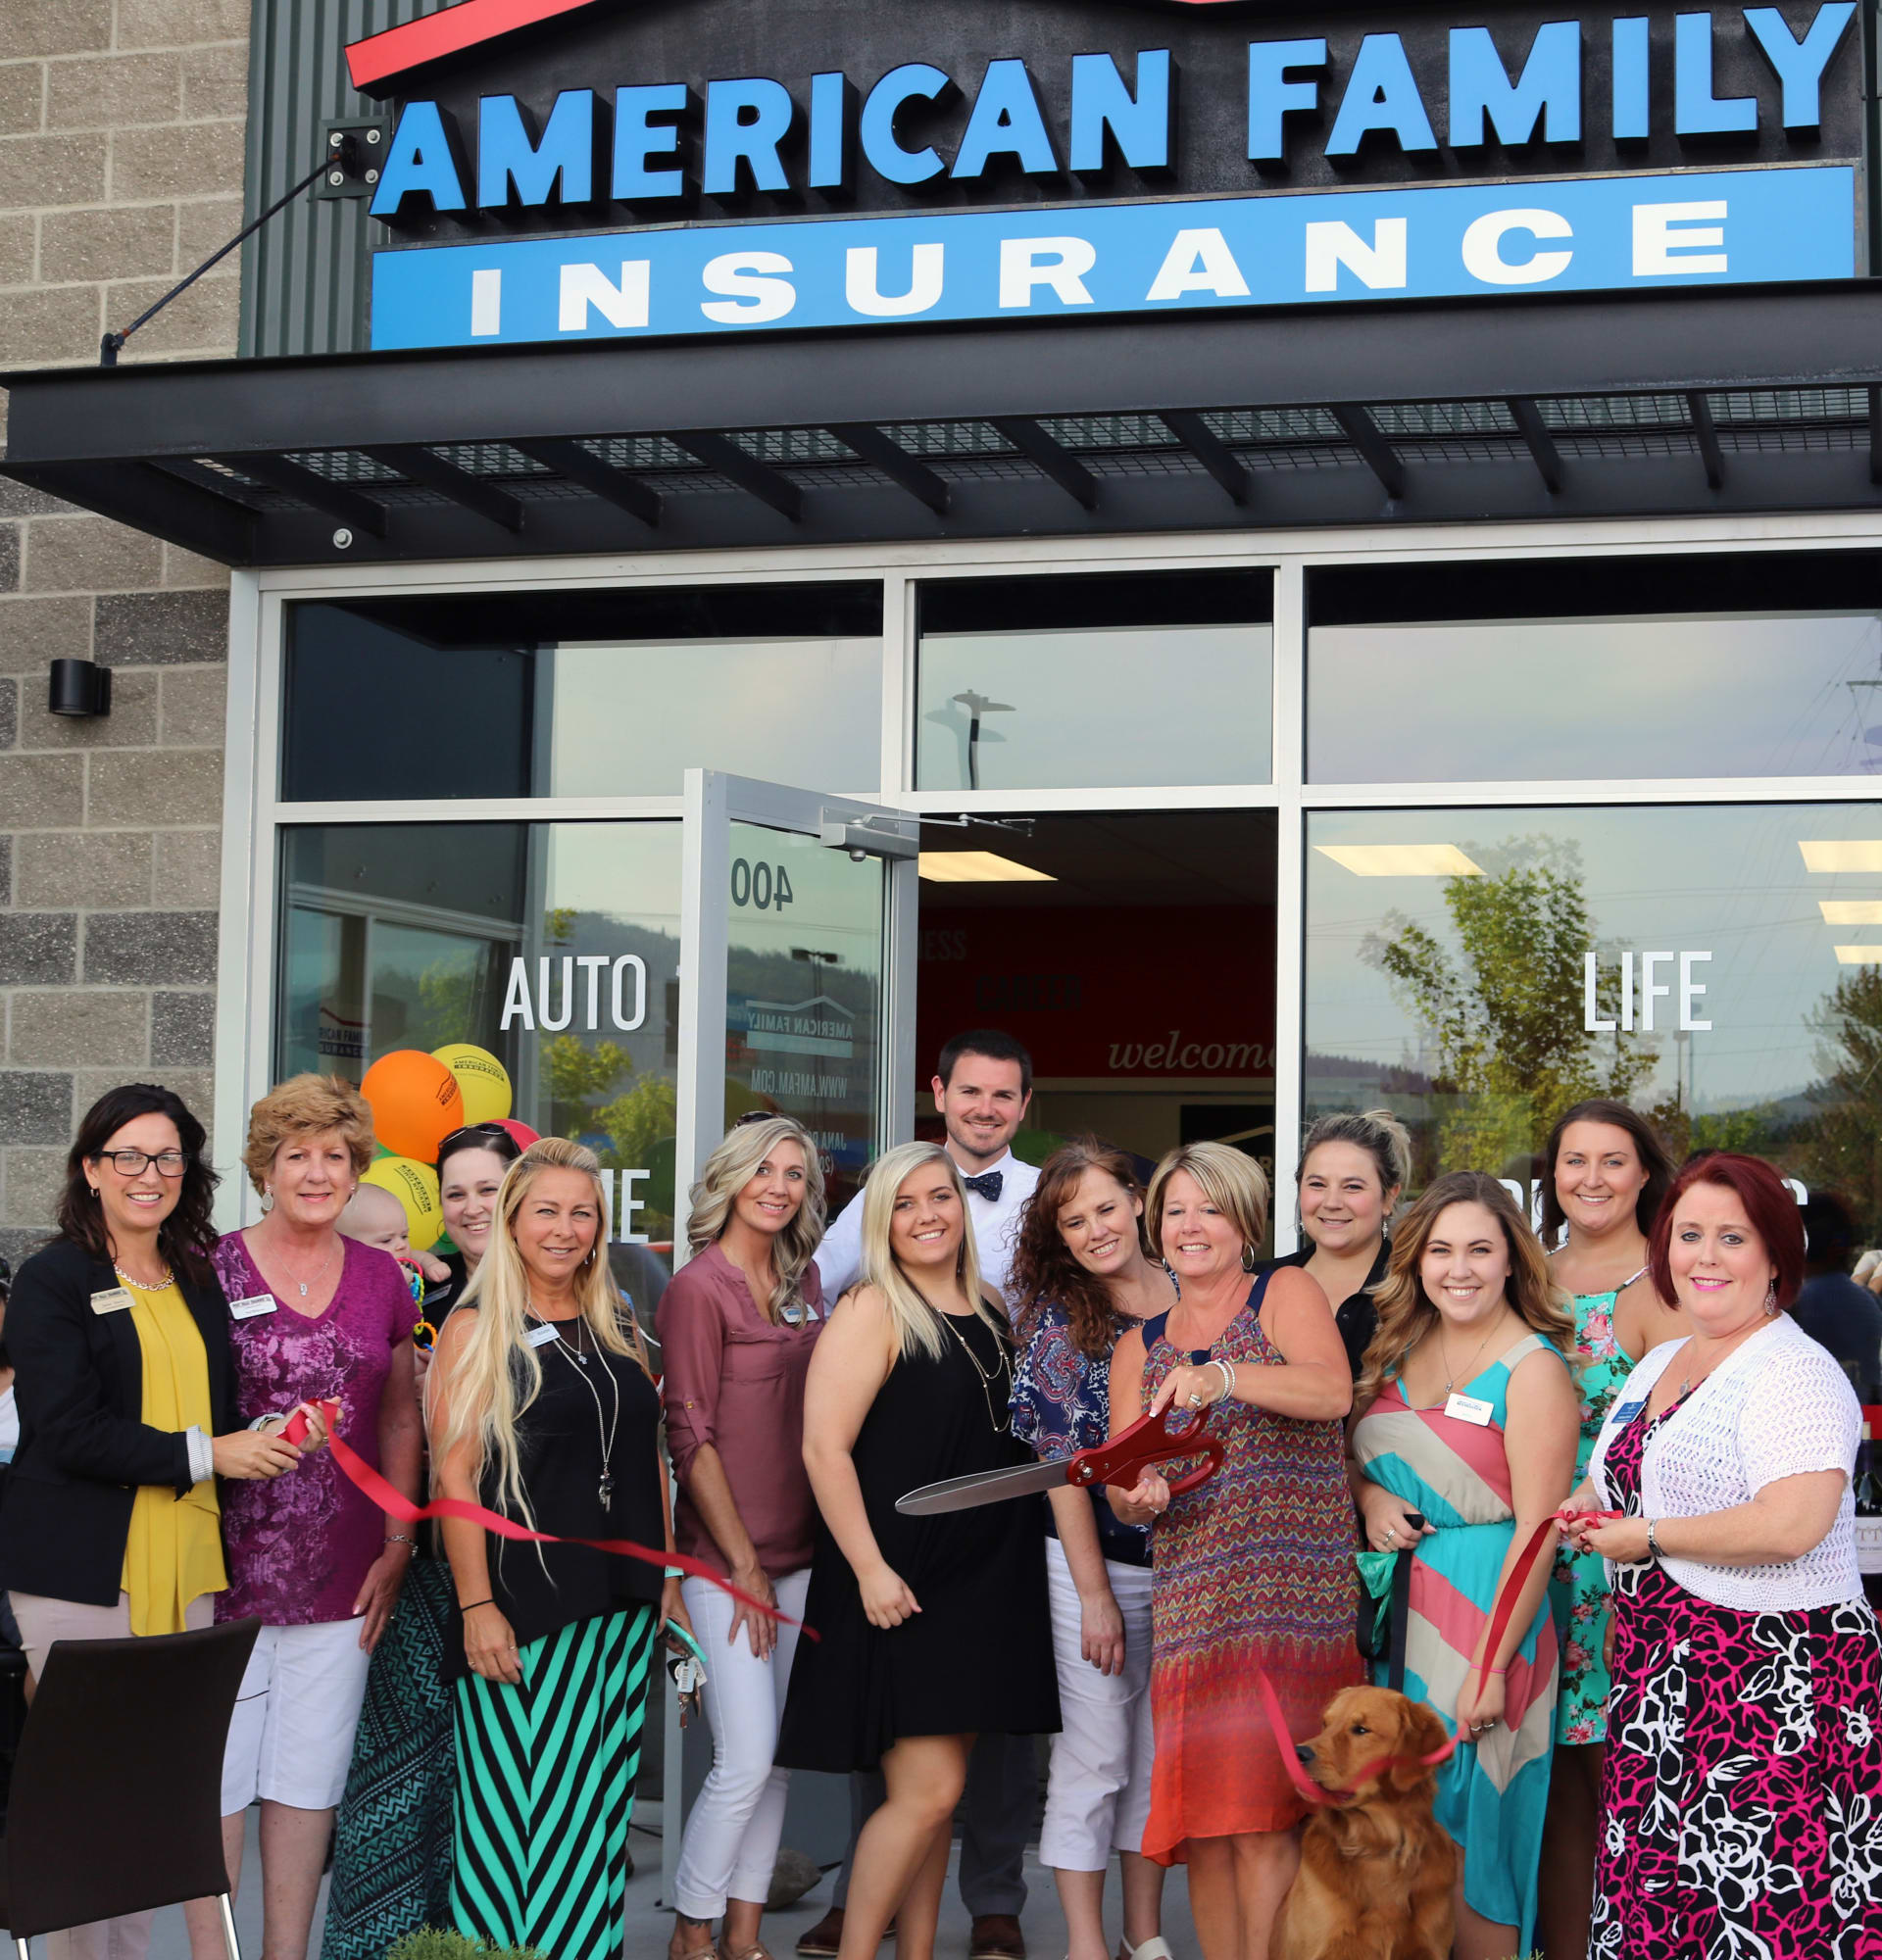 American-Family-Insurance-Ribbon-Cutting-2017-w1920.jpg